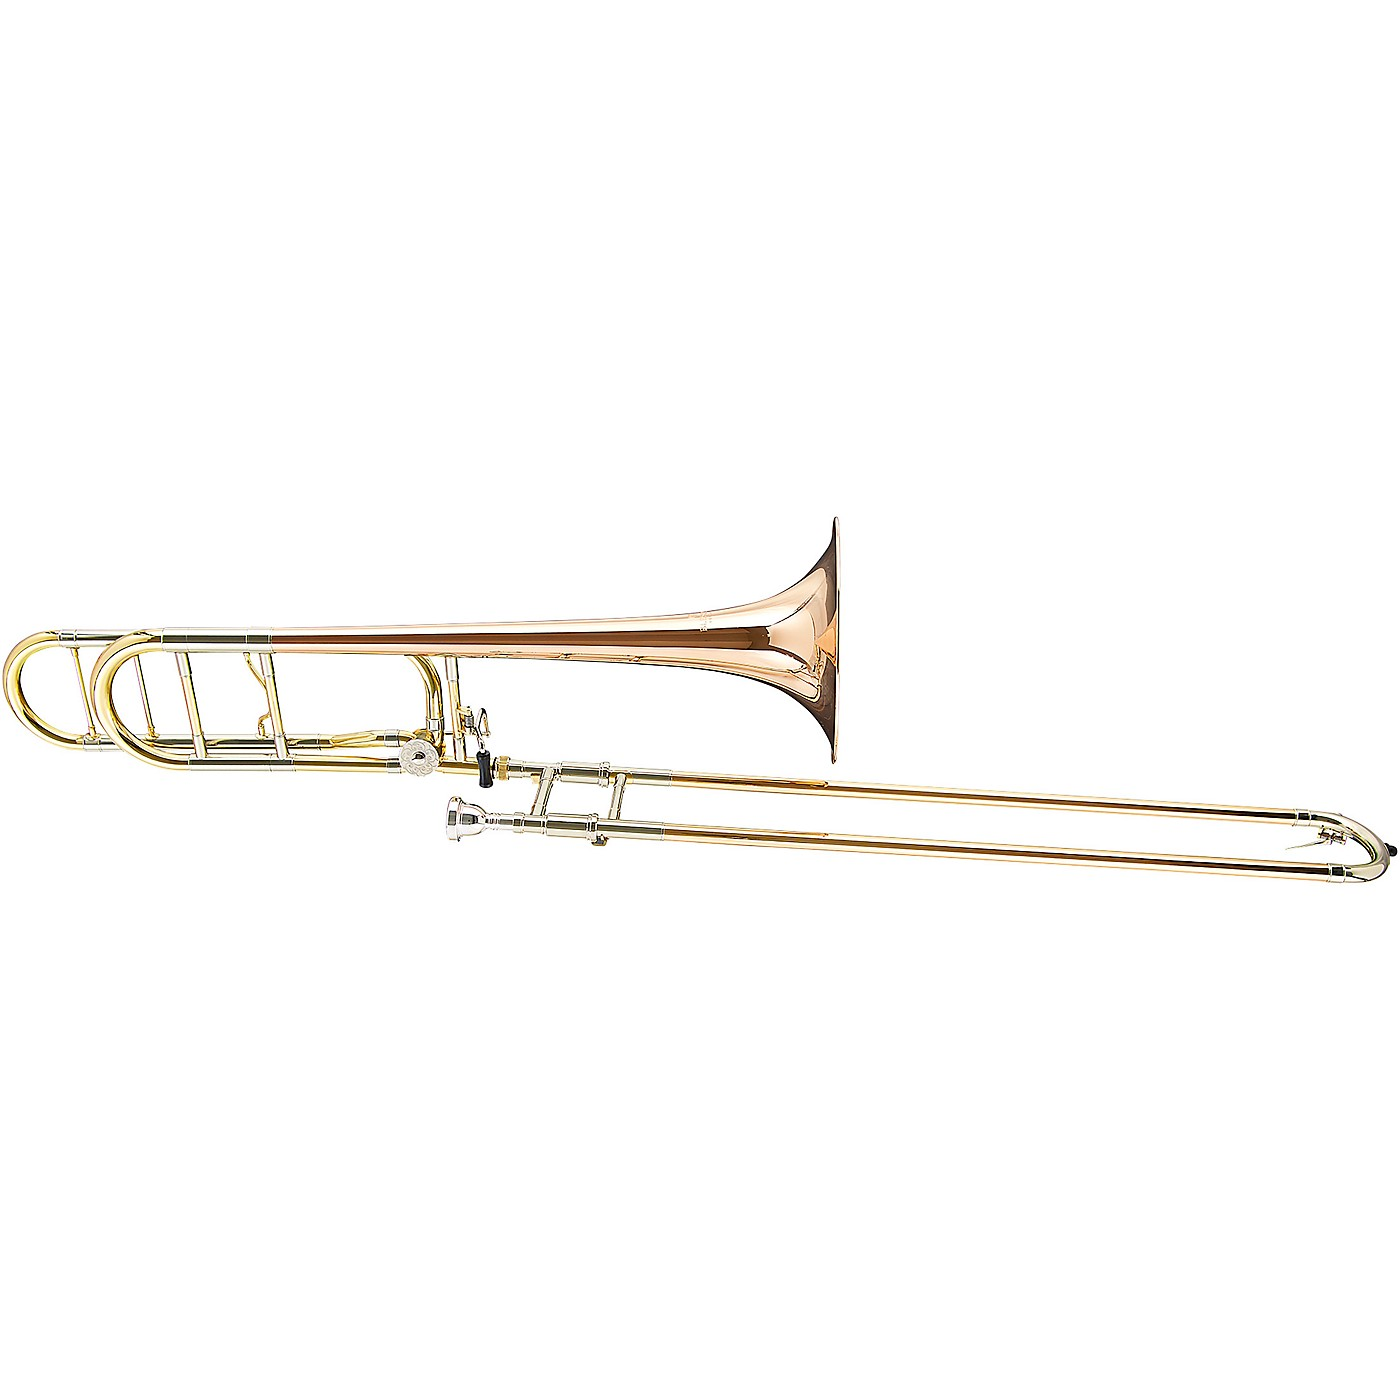 Blessing BTB-1488 Performance Series Bb/F Large Bore Rotor Trombone Outfit With Open Wrap thumbnail